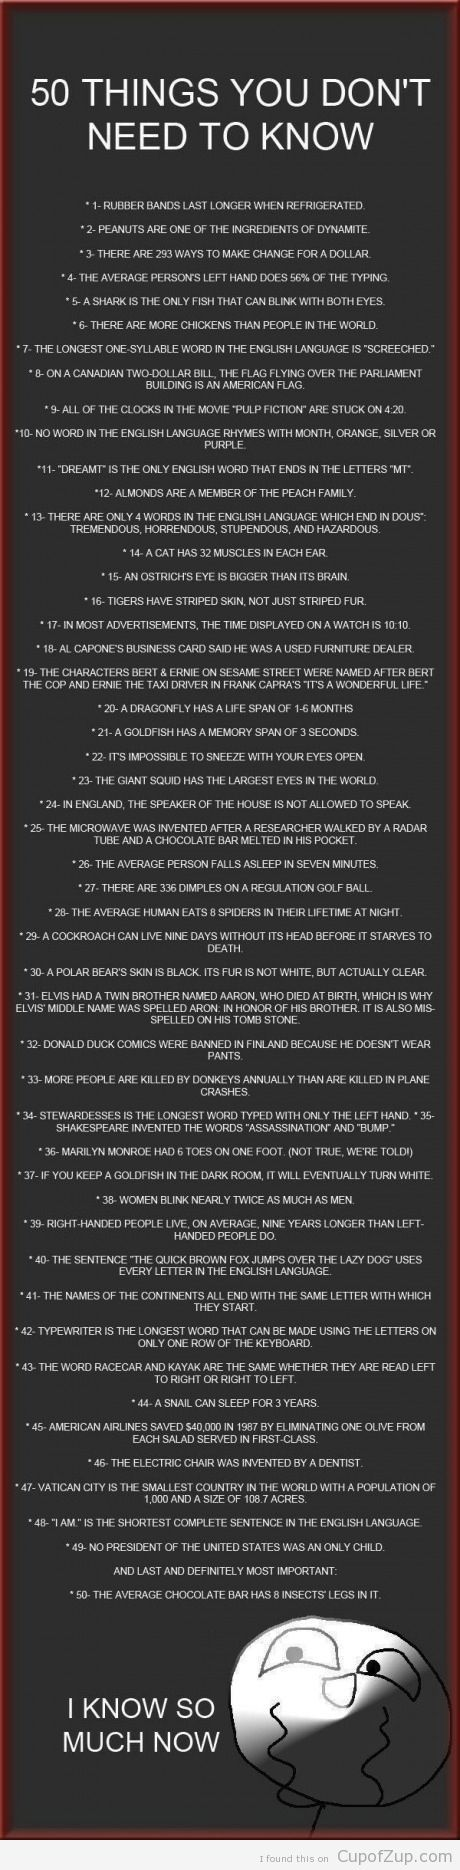 it's a good thing i don't eat chocolate...read #50 if you don't read any others:)